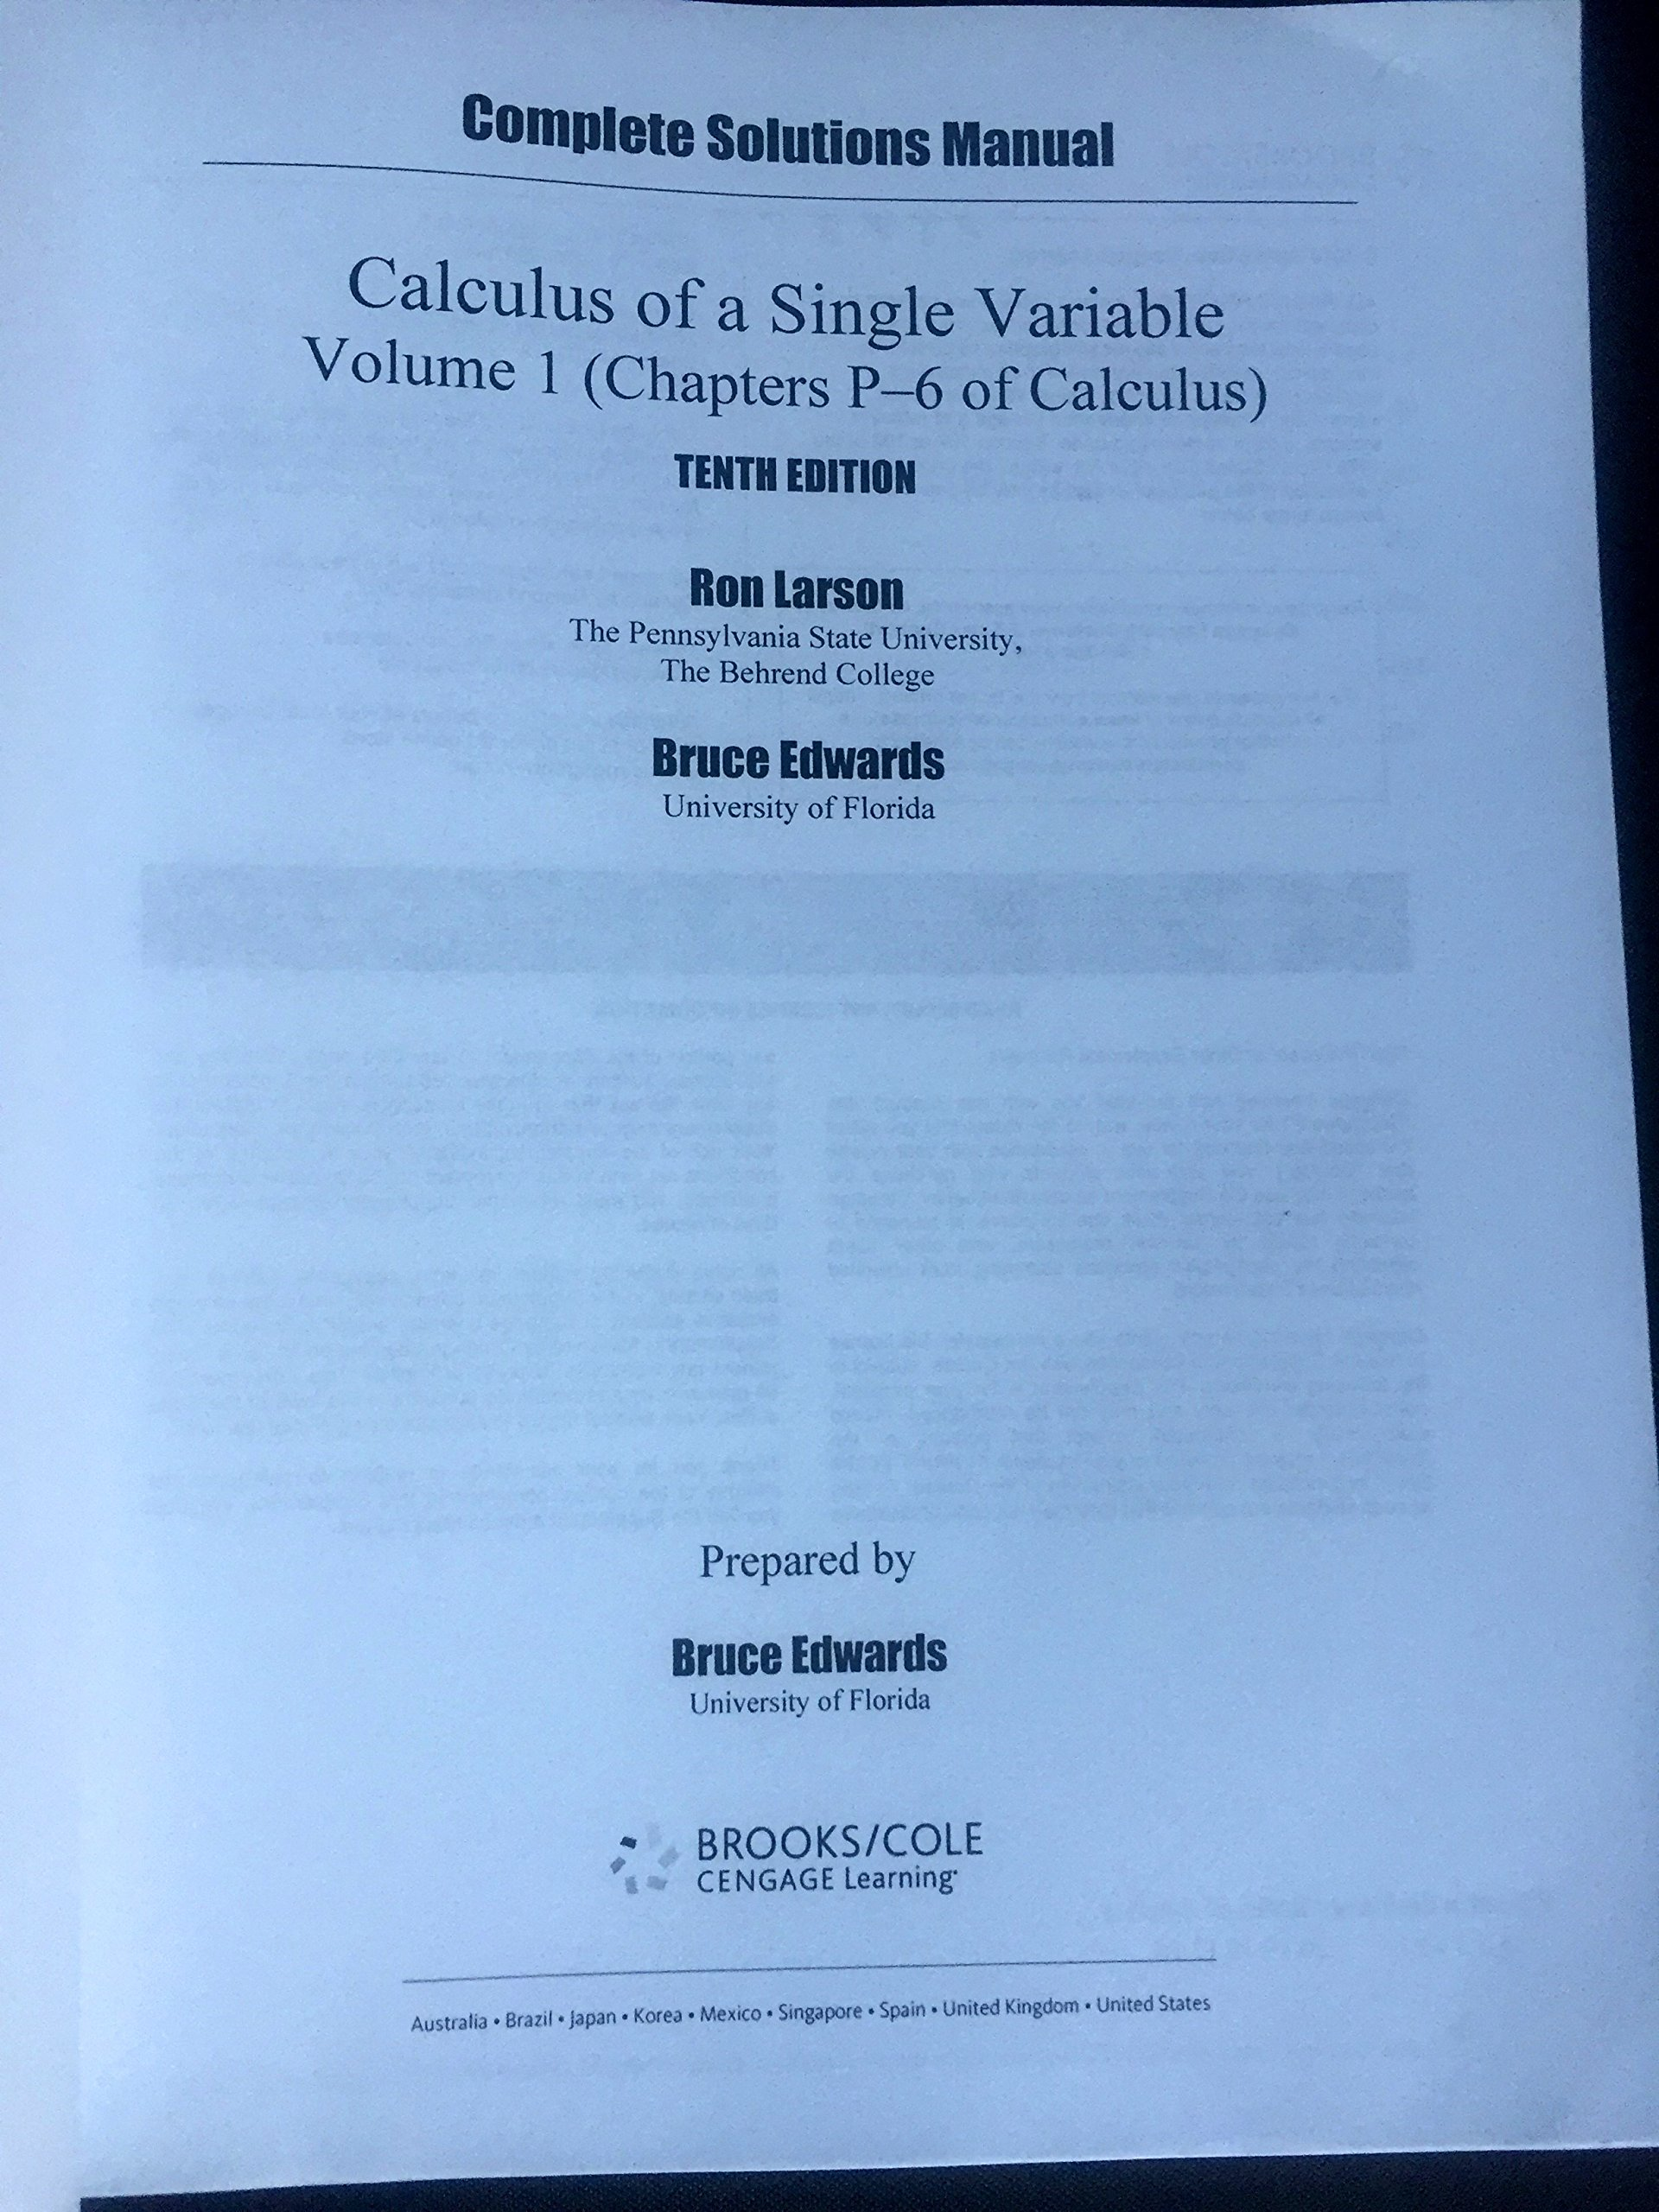 Complete Solutions Manual, Volume 1 for use with Calculus of A Single  Variable: Amazon.com: Books